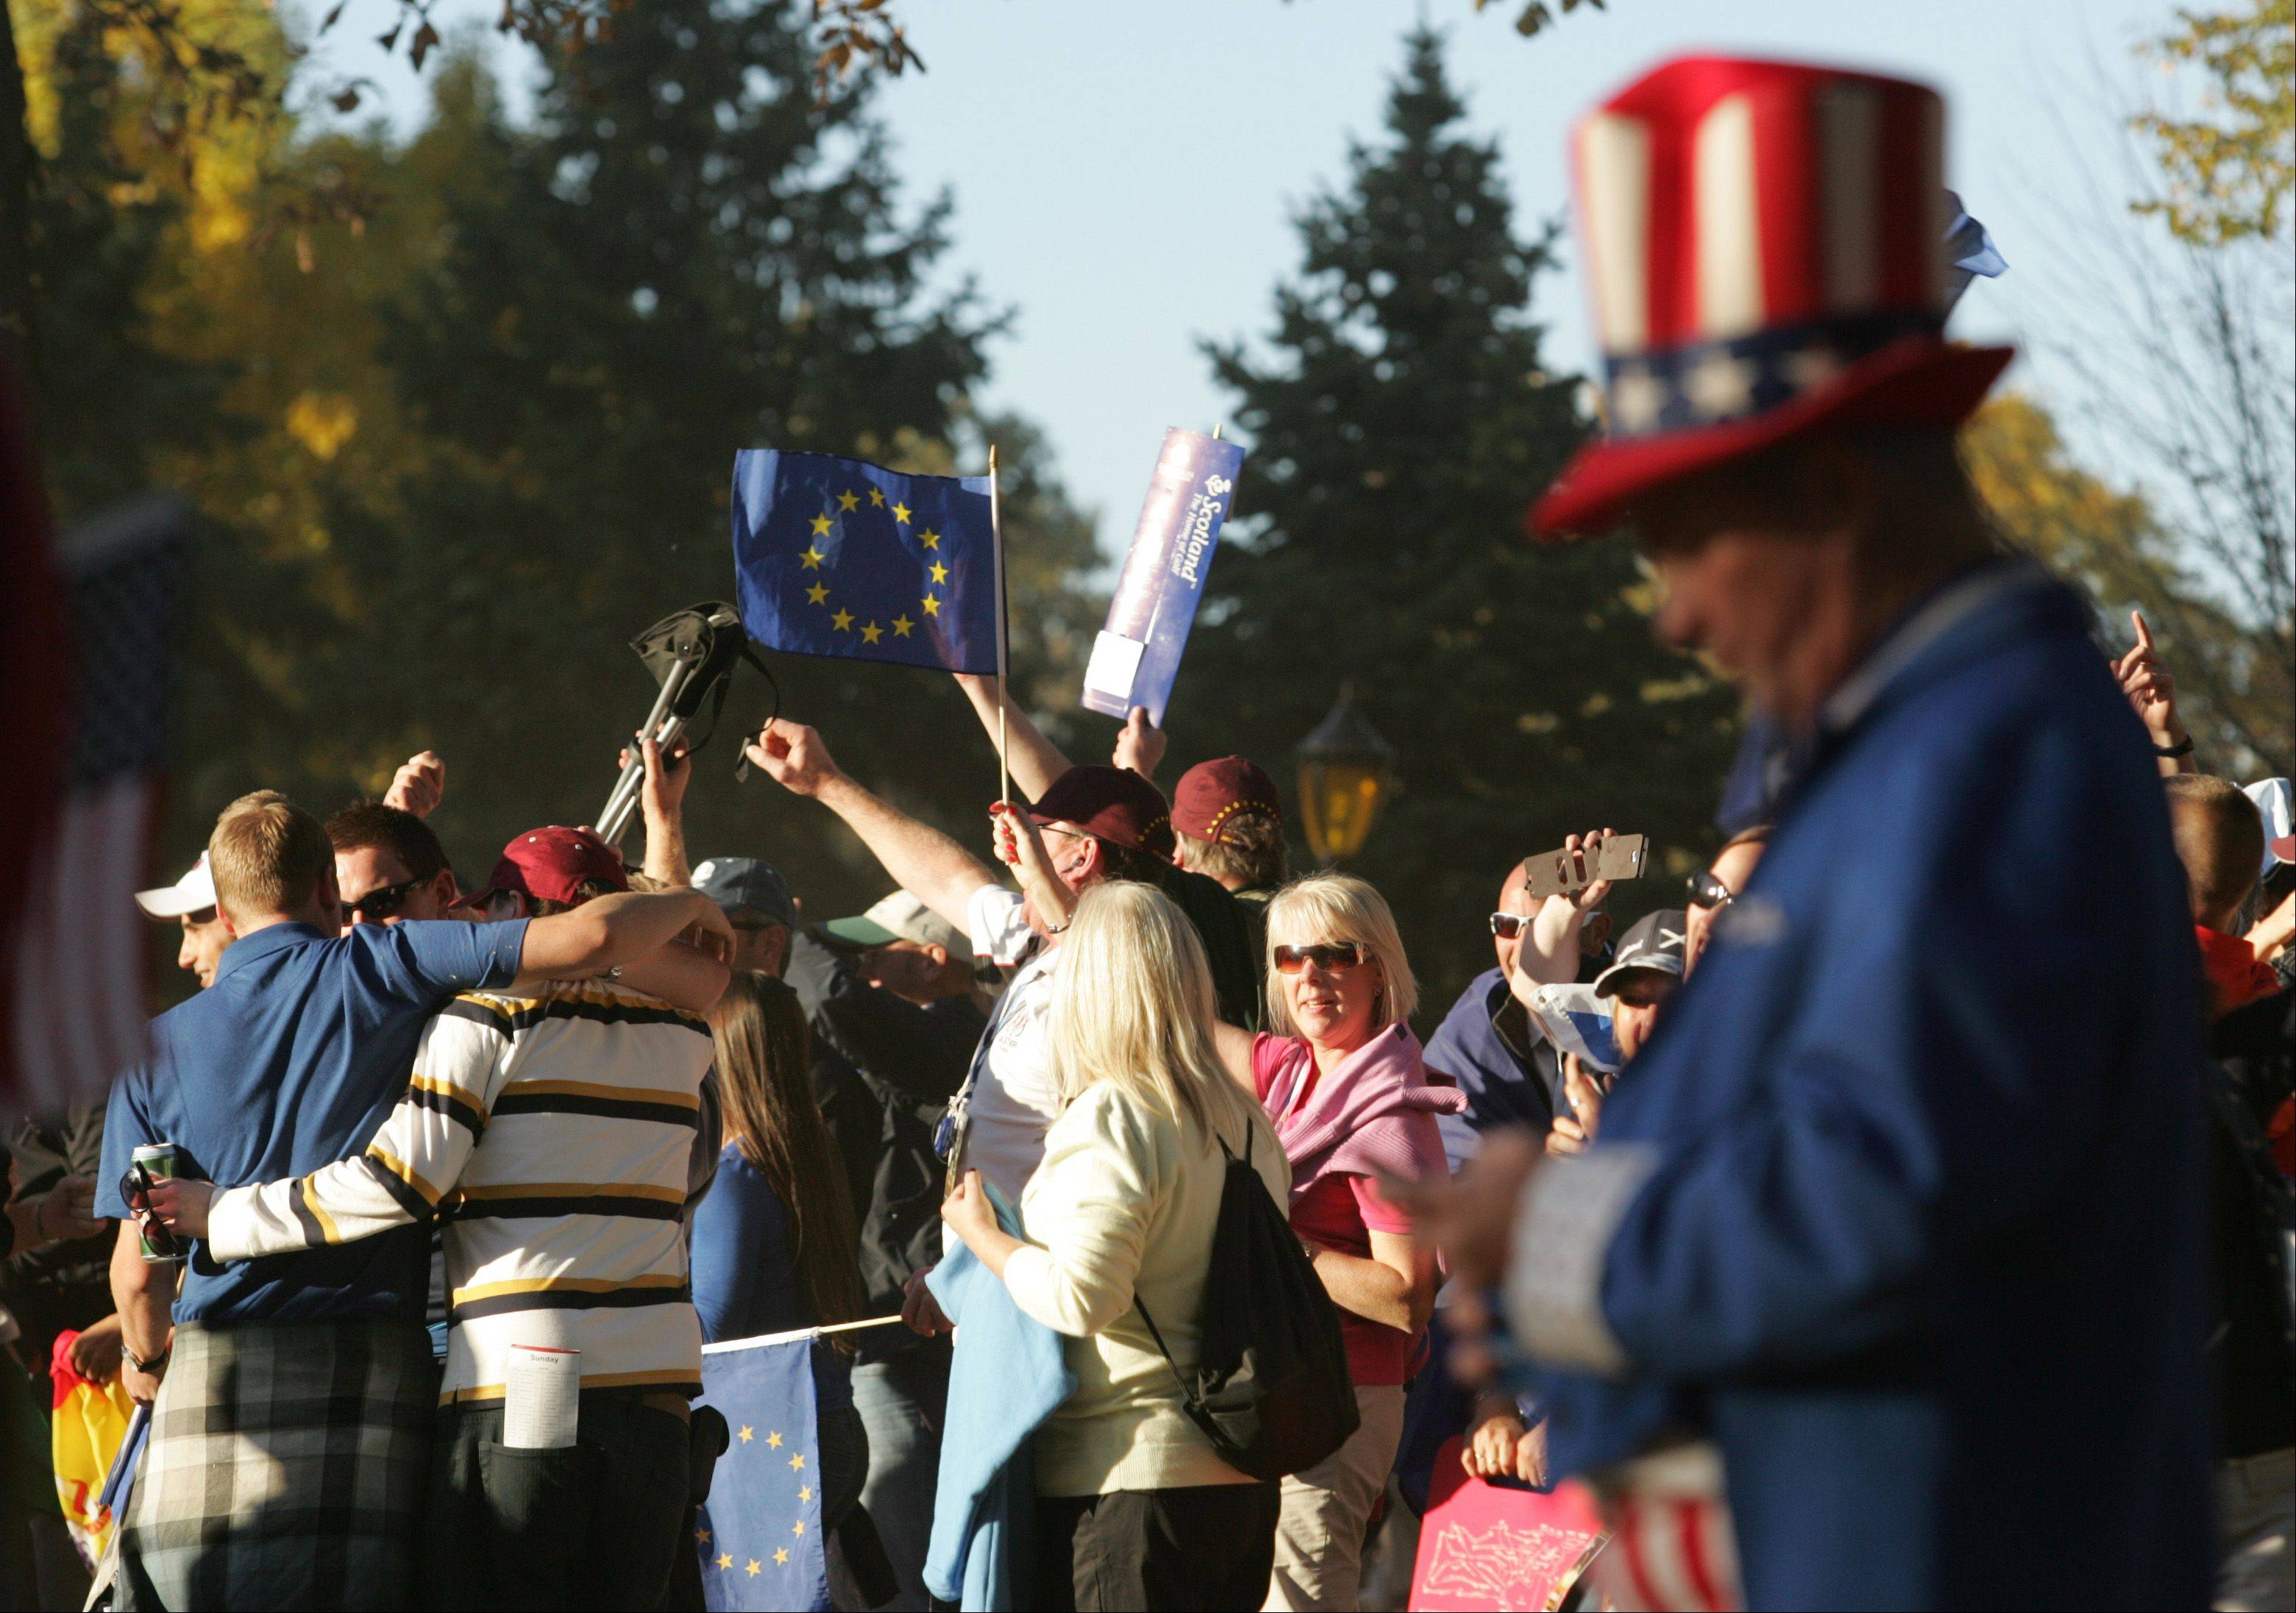 Dressed as Uncle Sam, Michael Sloan of Indianapolis, Indiana can't watch as Team Europe fans celebrate nearby Sunday evening in Medinah.